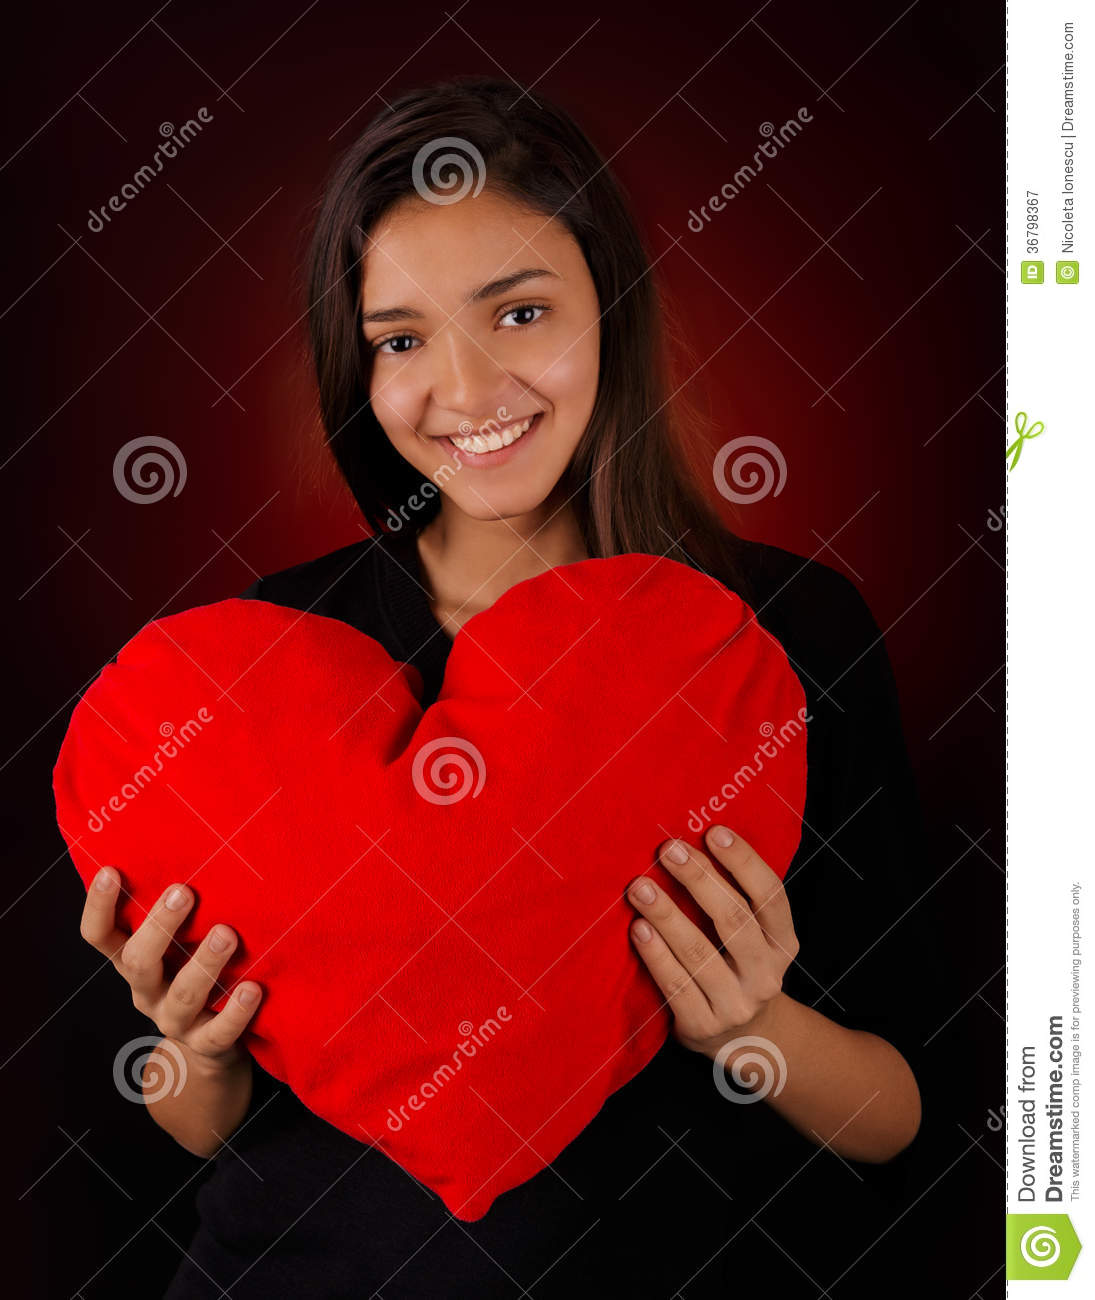 Portrait Of A Pretty Girl Hugging A Big Red Heart Royalty